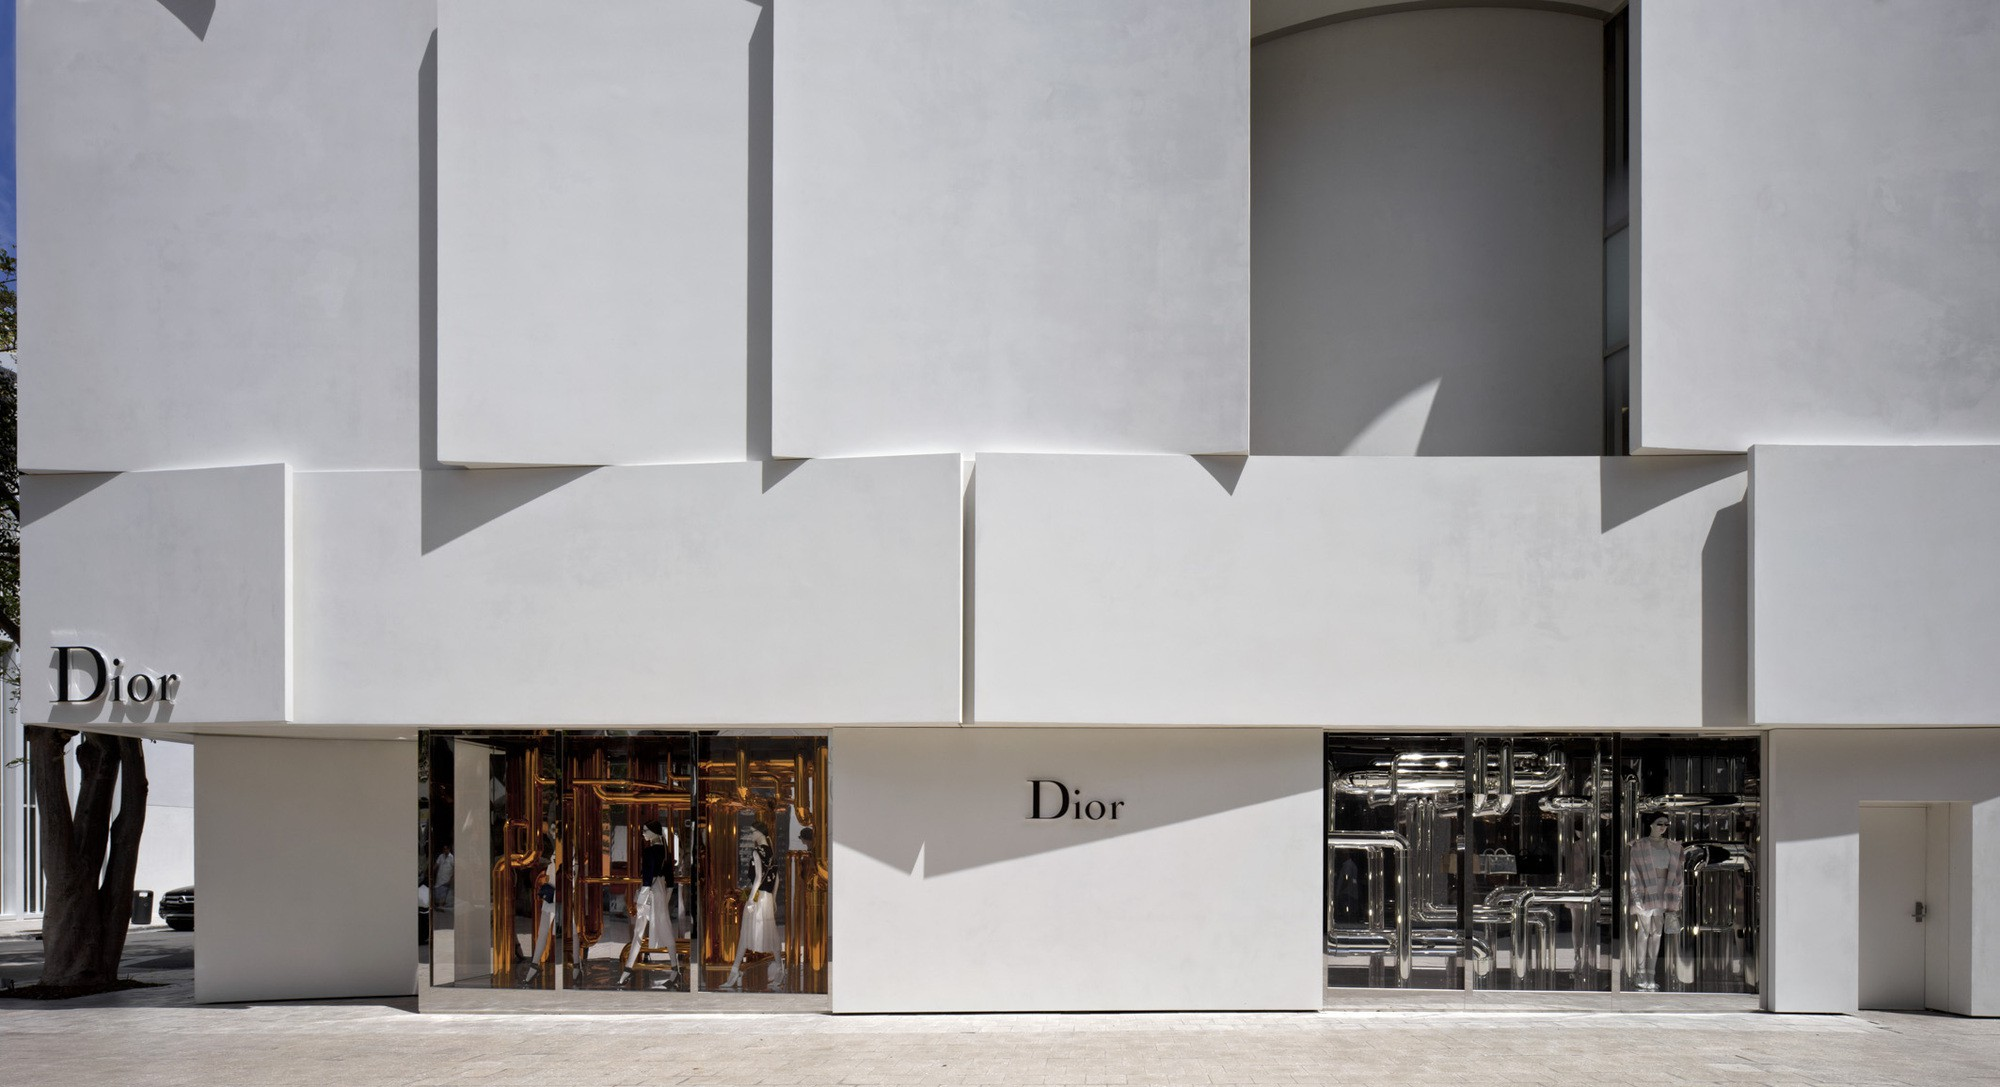 Dior Miami Facade-yesonfashion-com-14